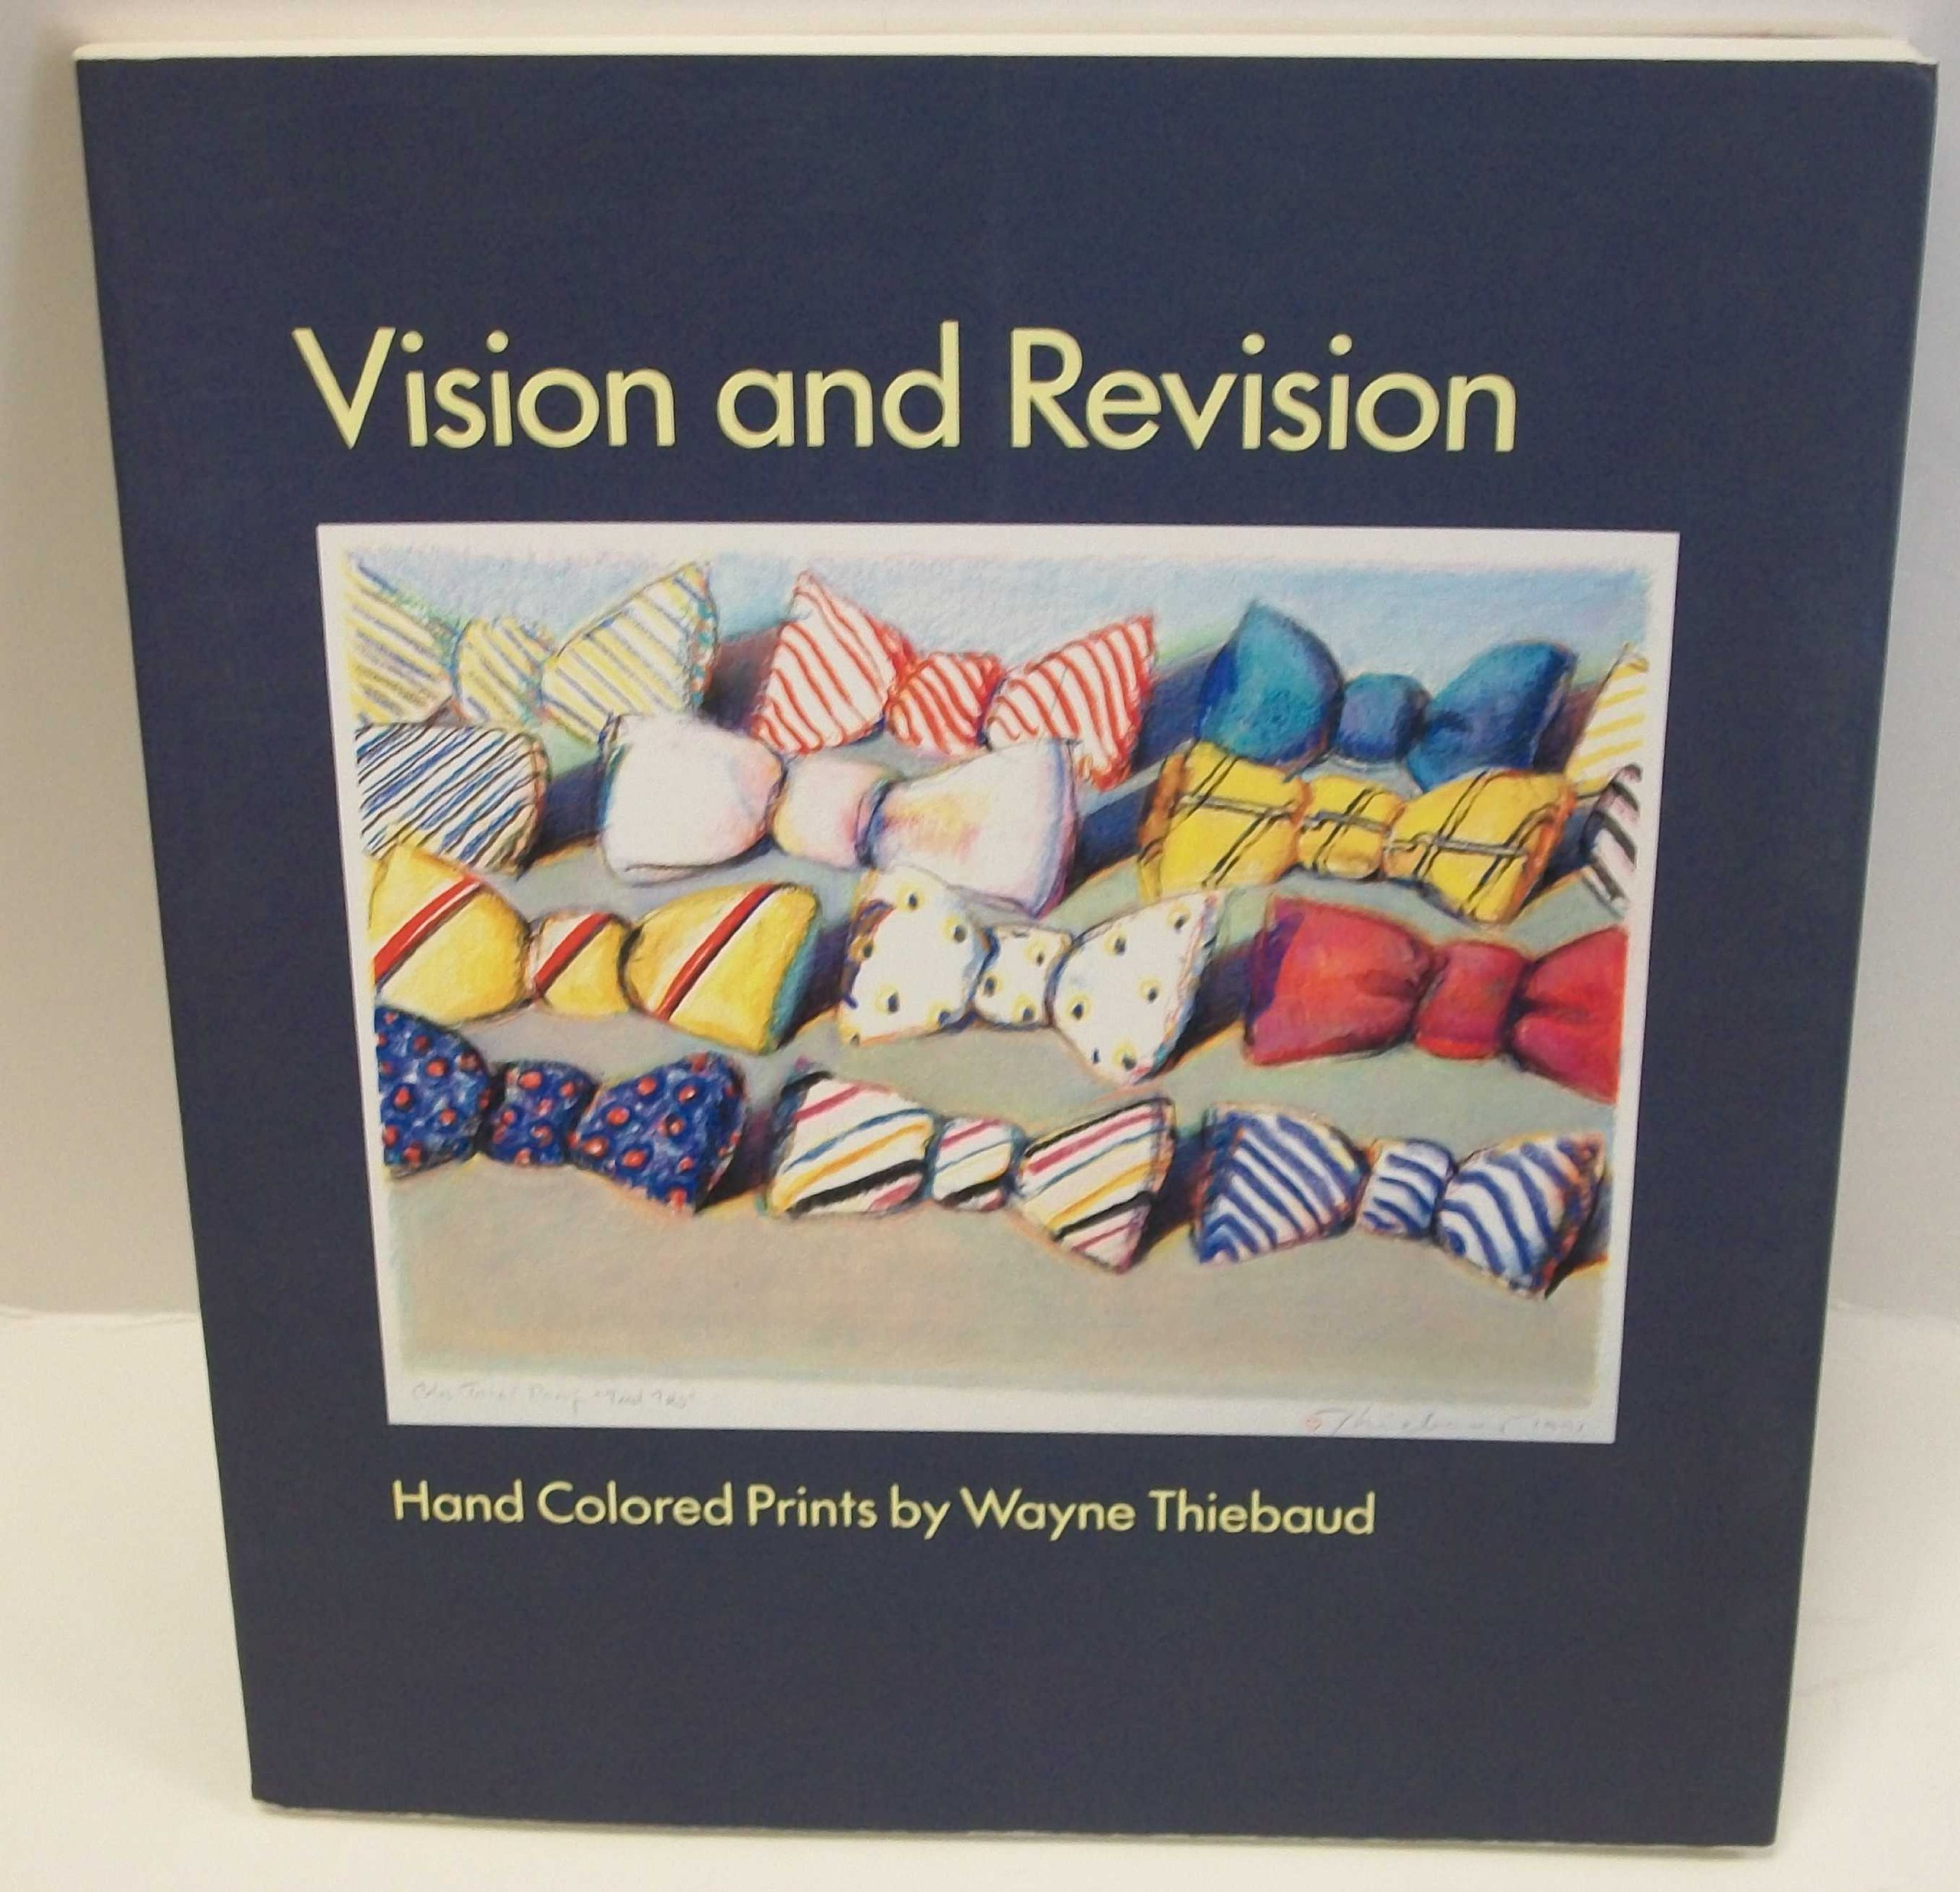 vision and revision hand colored prints by wayne thiebaud